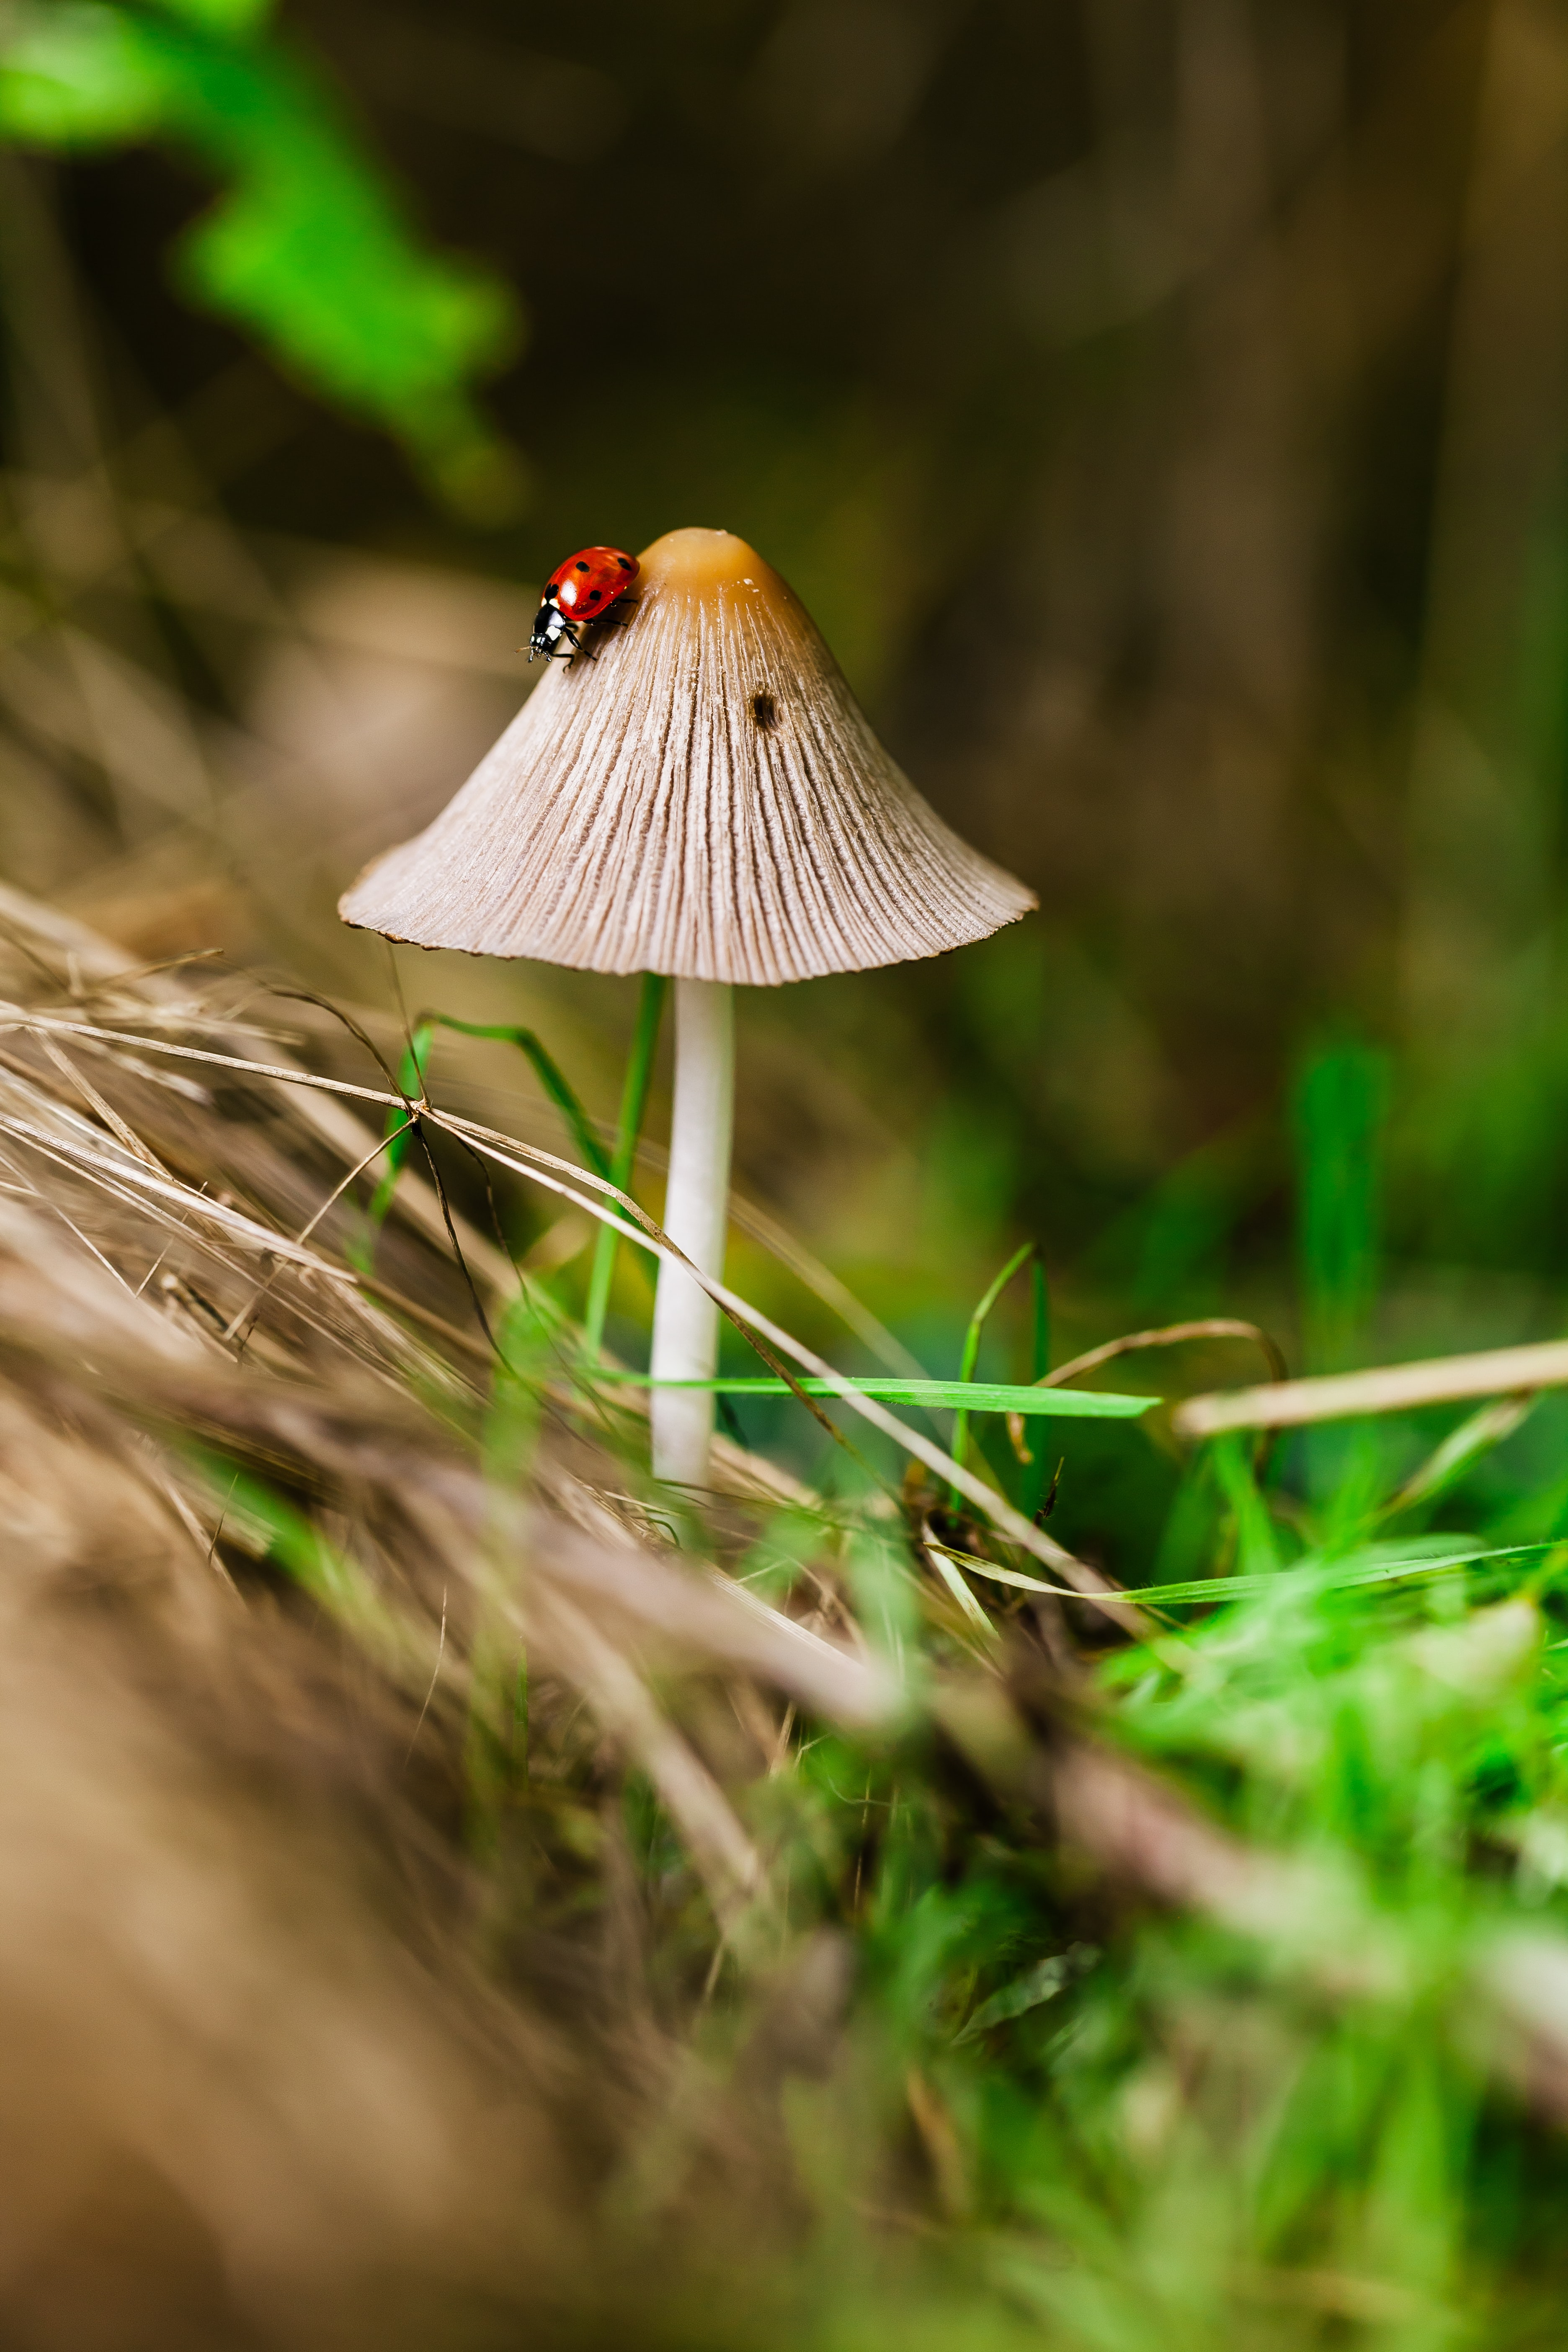 Ladybug climbs down a wild mushroom in the forest